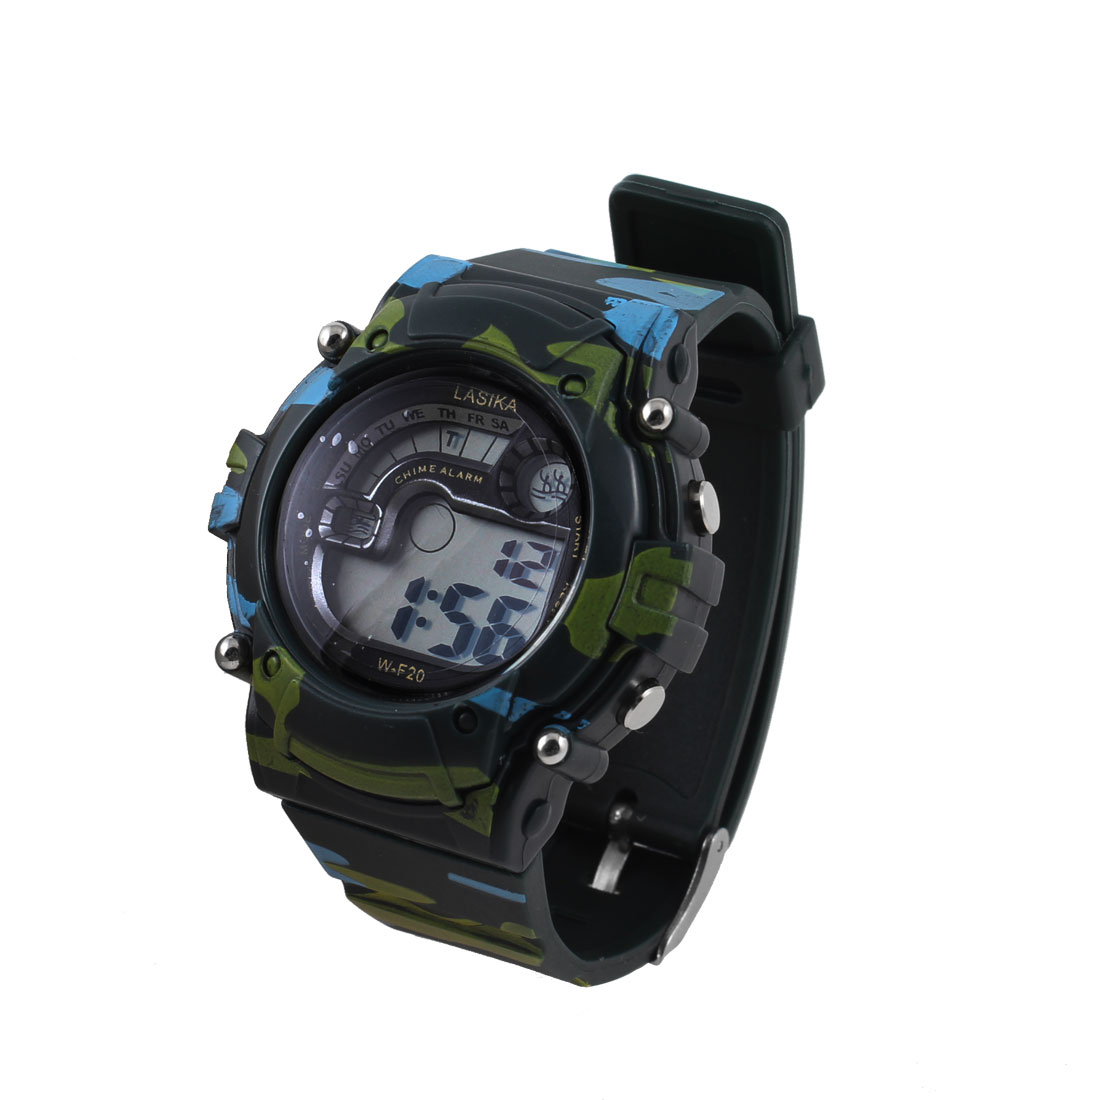 Army Green Camouflage Pattern Round Dial Digital Display Sports Watch for Men